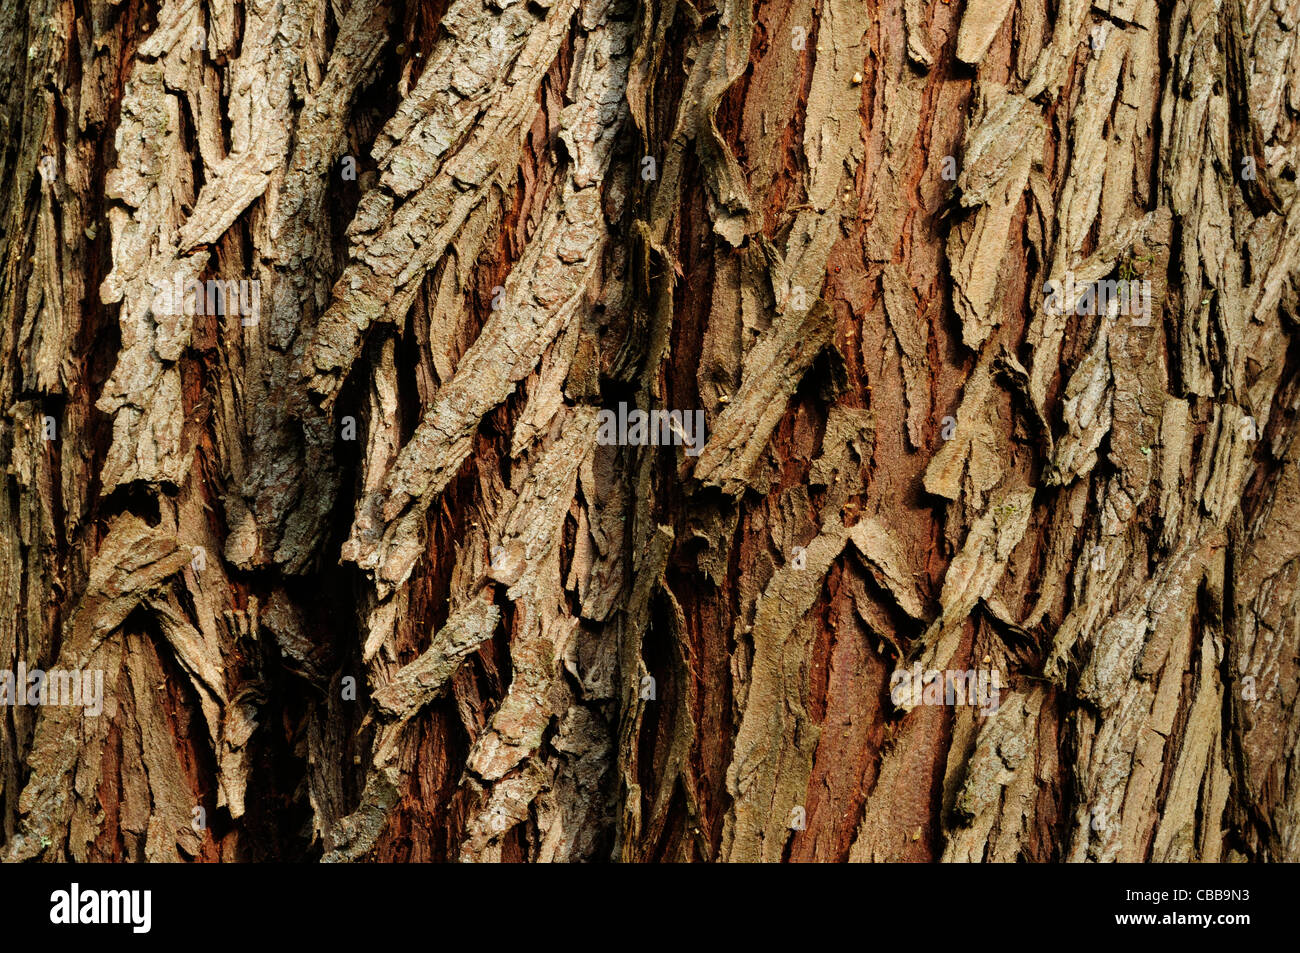 Conifer bark - Stock Image